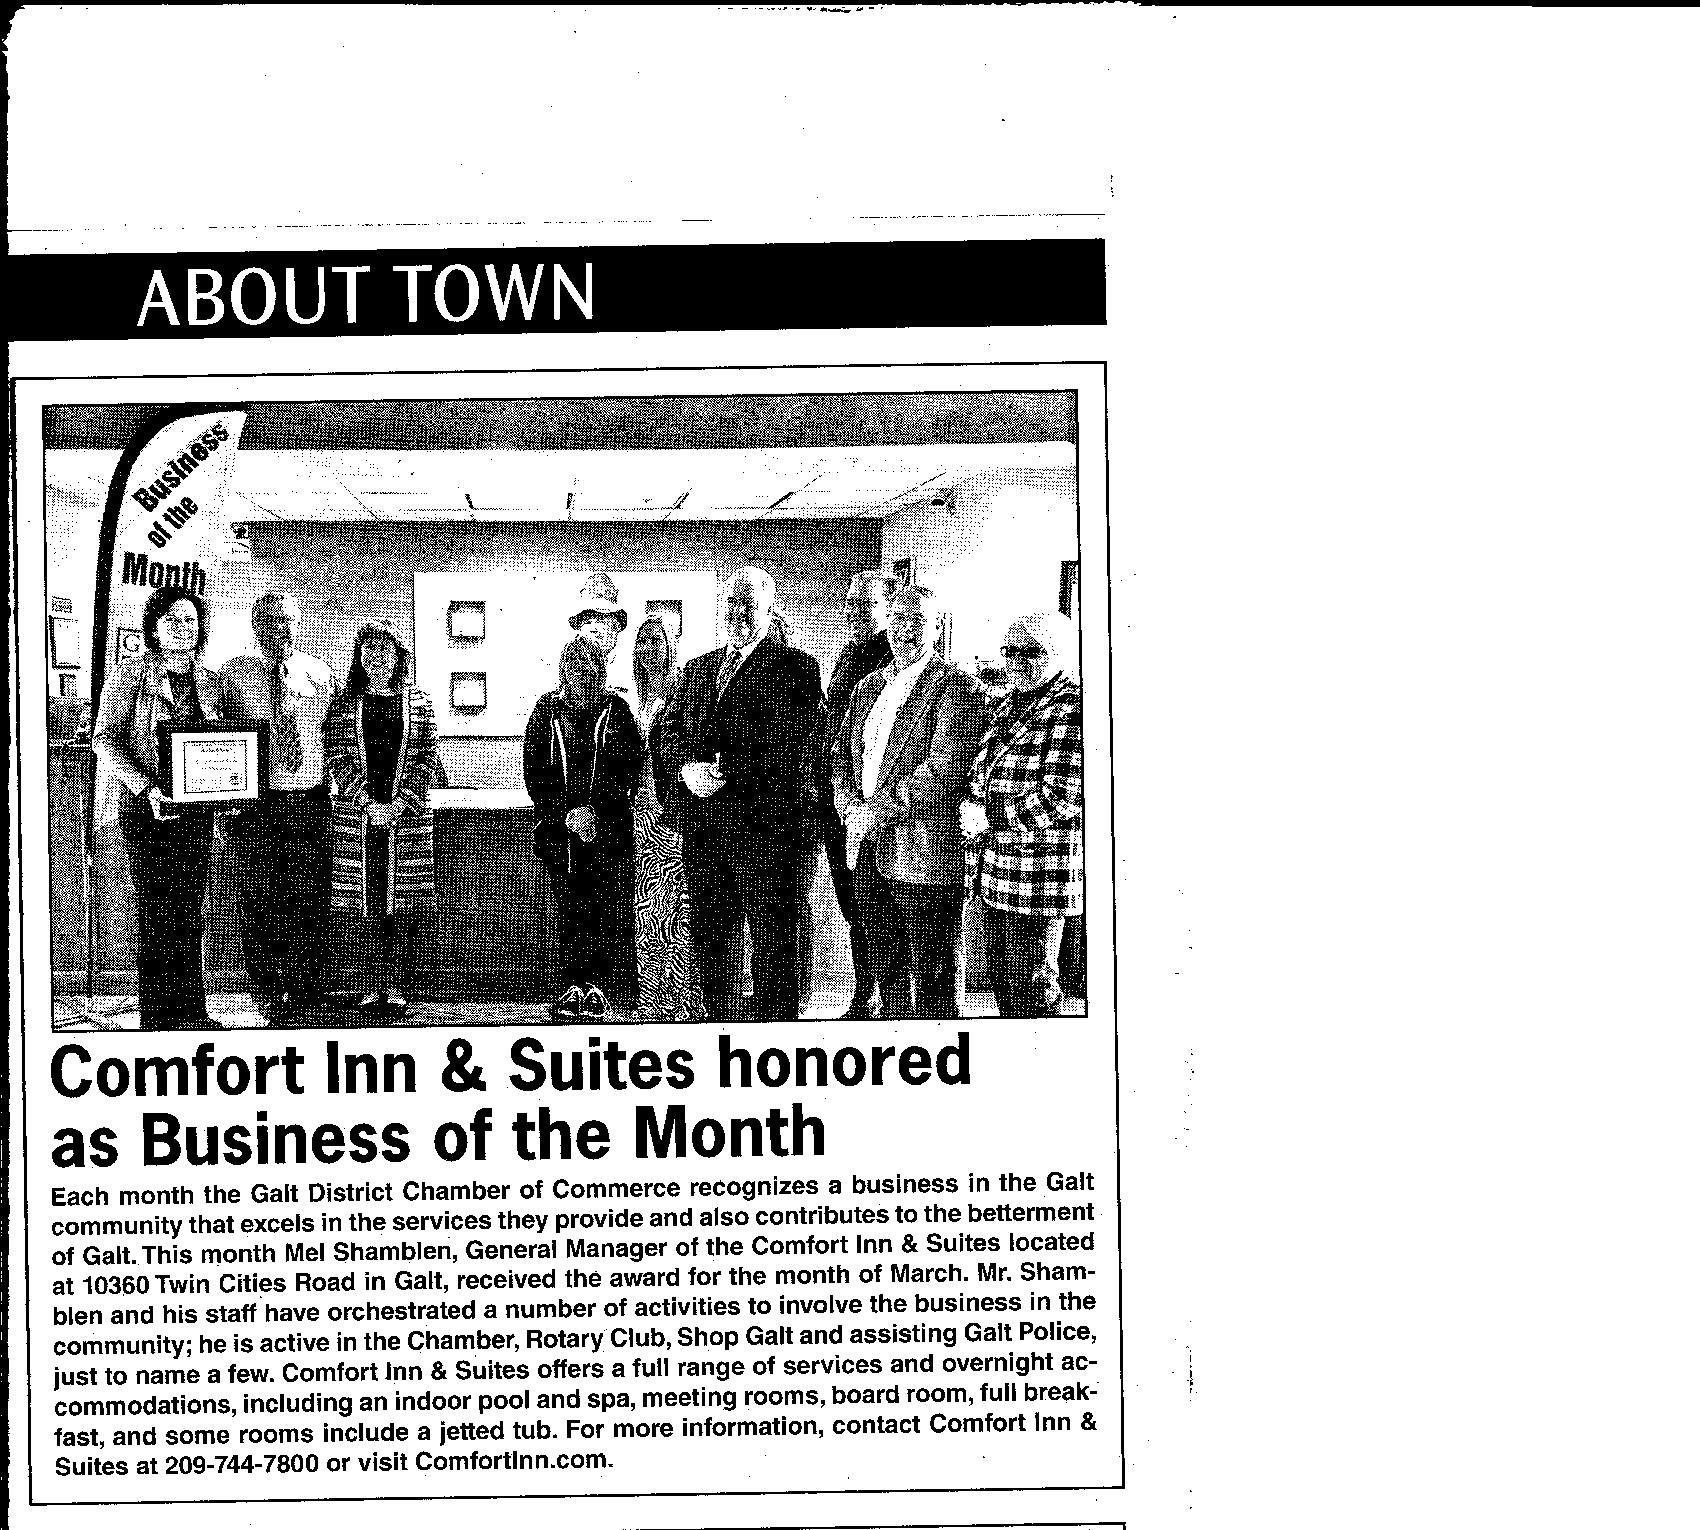 Pin On Galt Business Of The Month